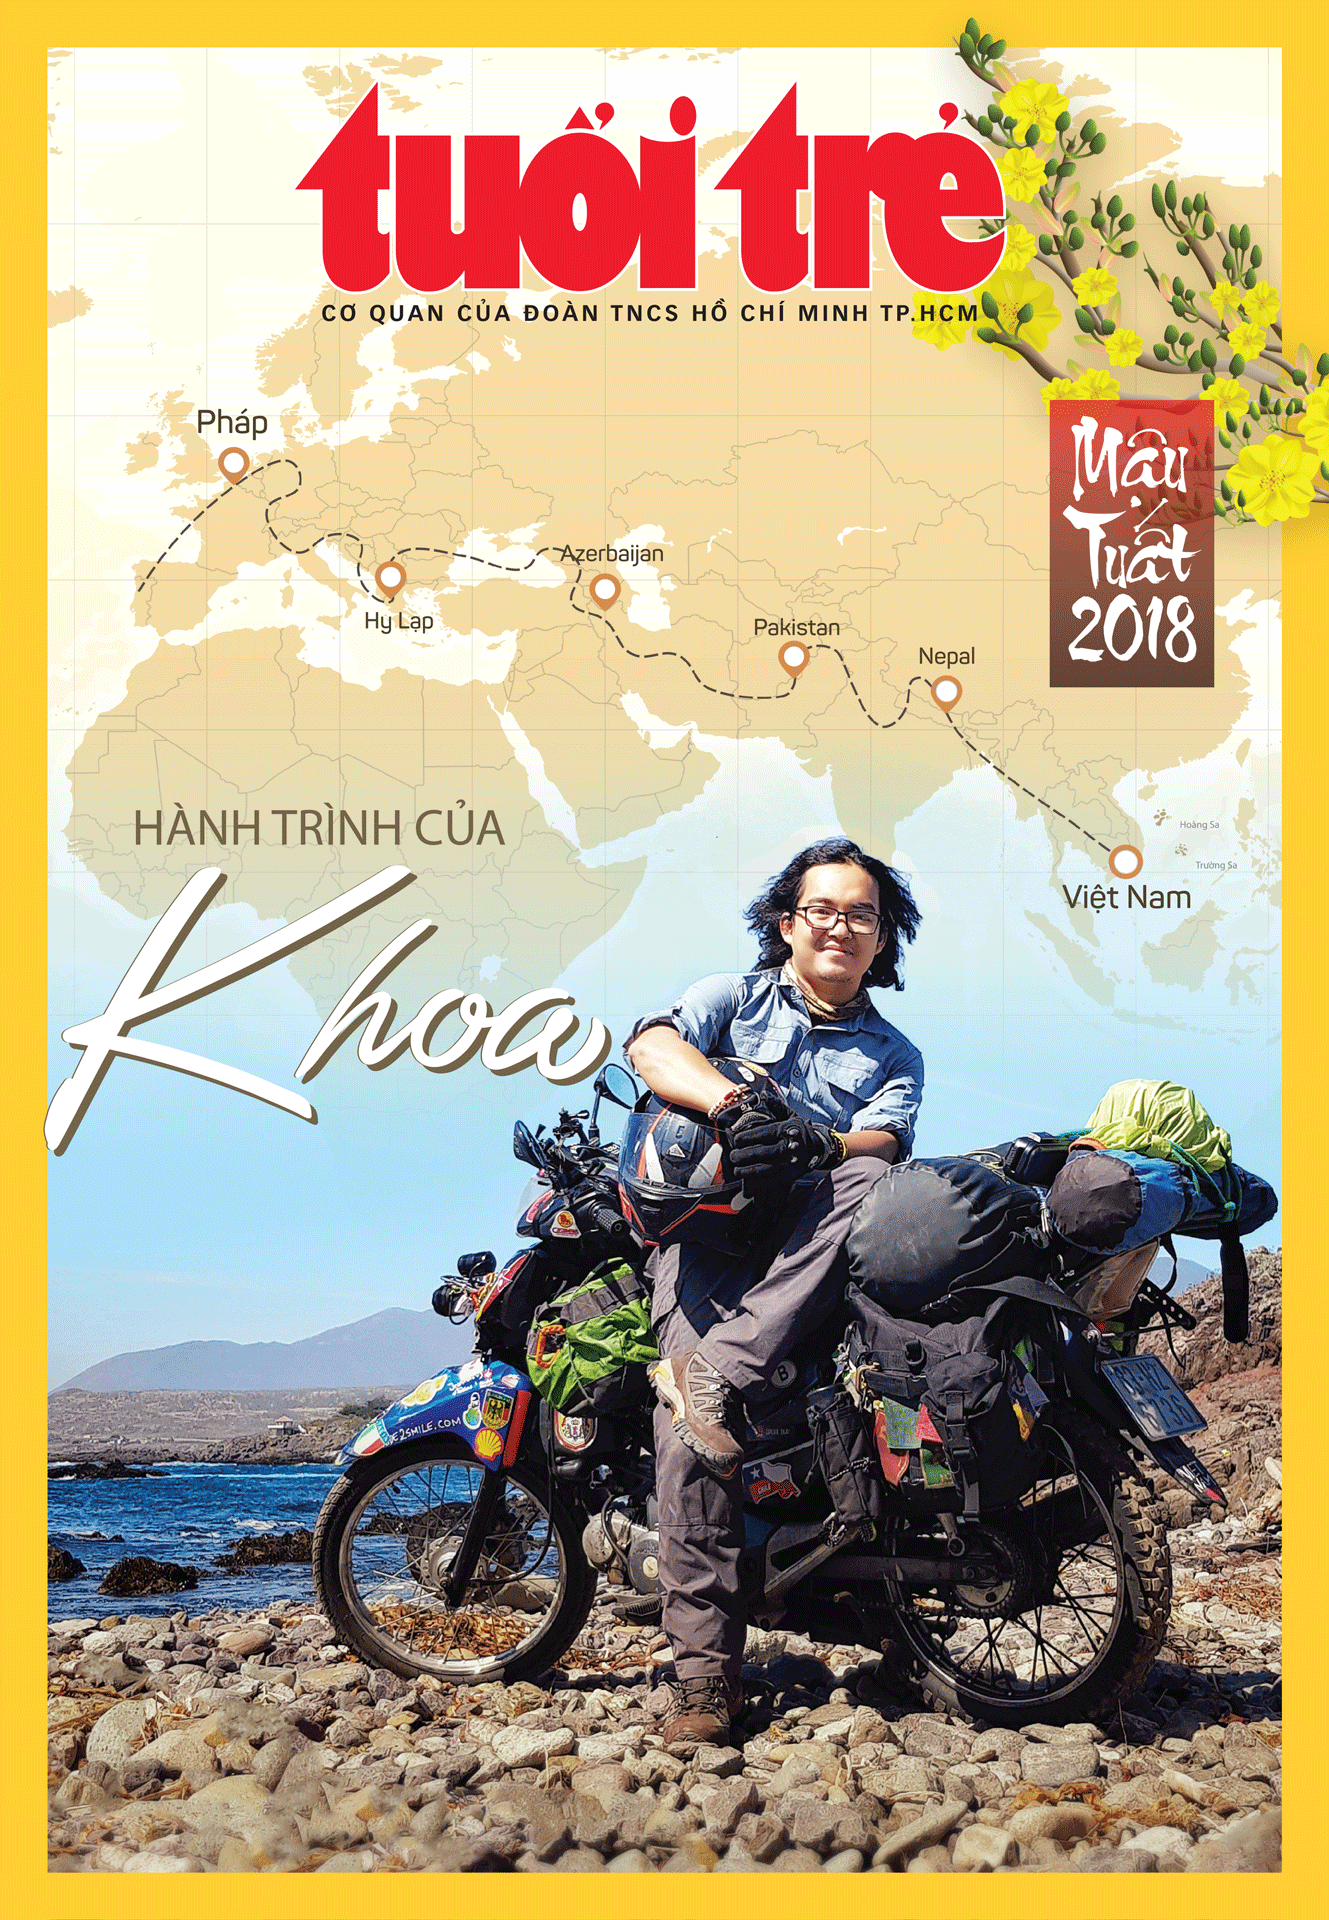 Vietnamese globetrotter Tran Dang Dang Khoa appears on the cover of the Tuoi Tre daily's special issue for the 2018 Lunar New Year.